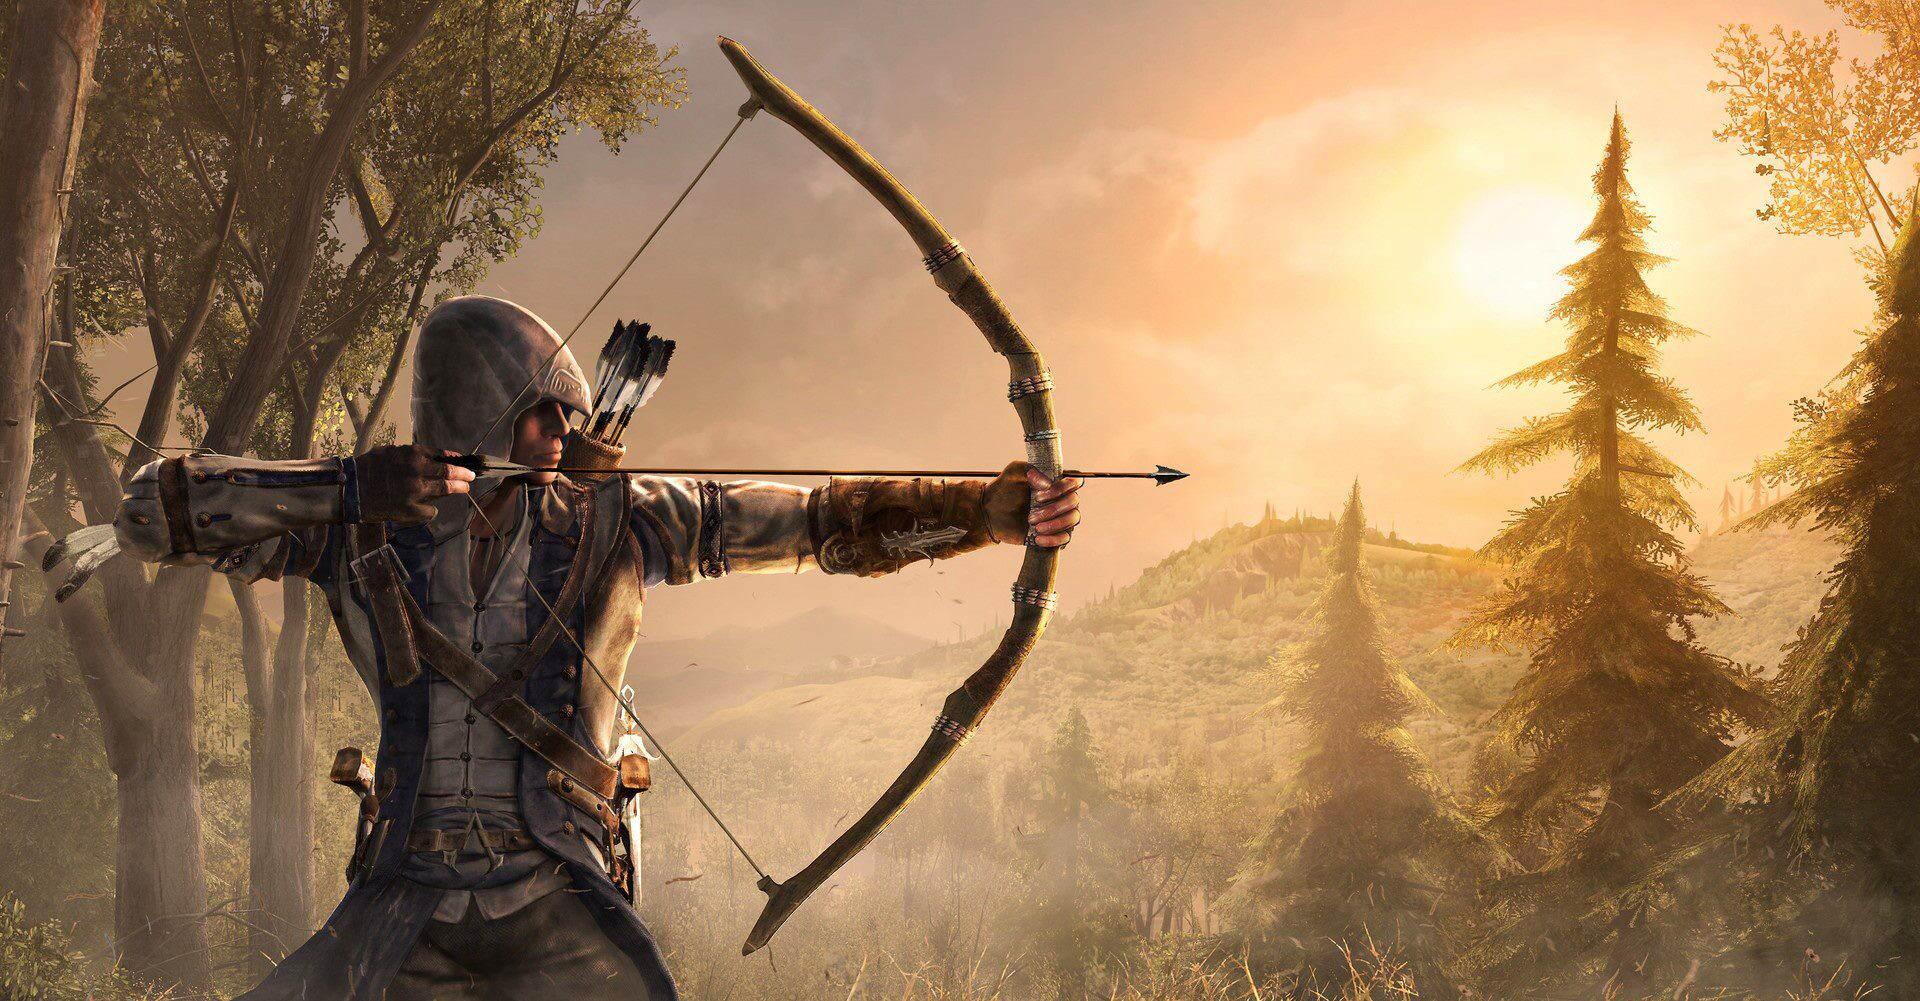 free download Assassins Creed 3 repack Assassins Creed 3 Studio Developing Massive New Ubisoft Project